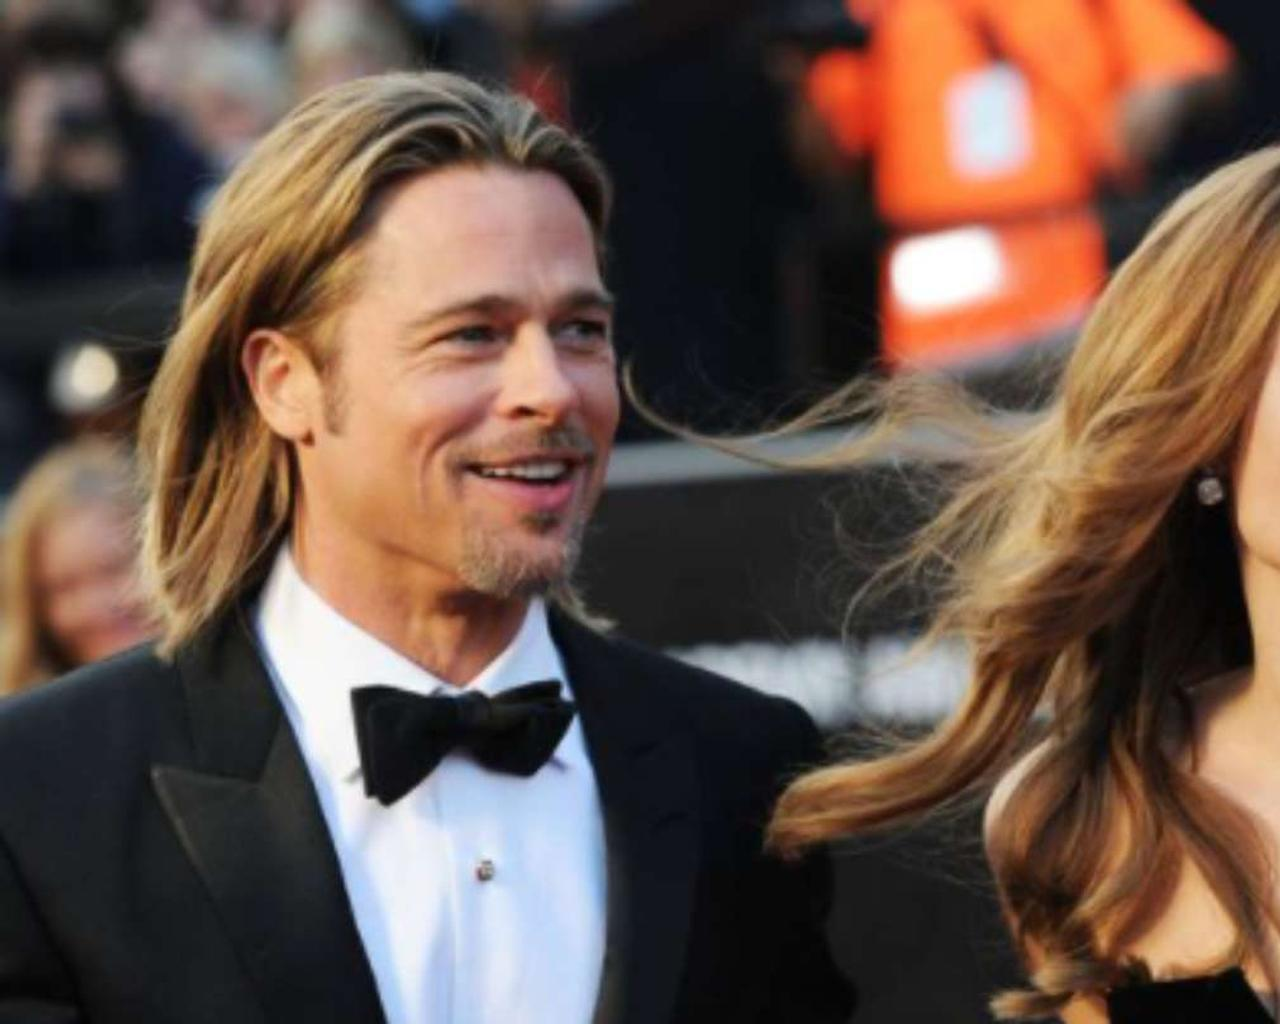 In Hollywood history, Brad Pitt and Angelina Jolie, or the most expensive divorce.